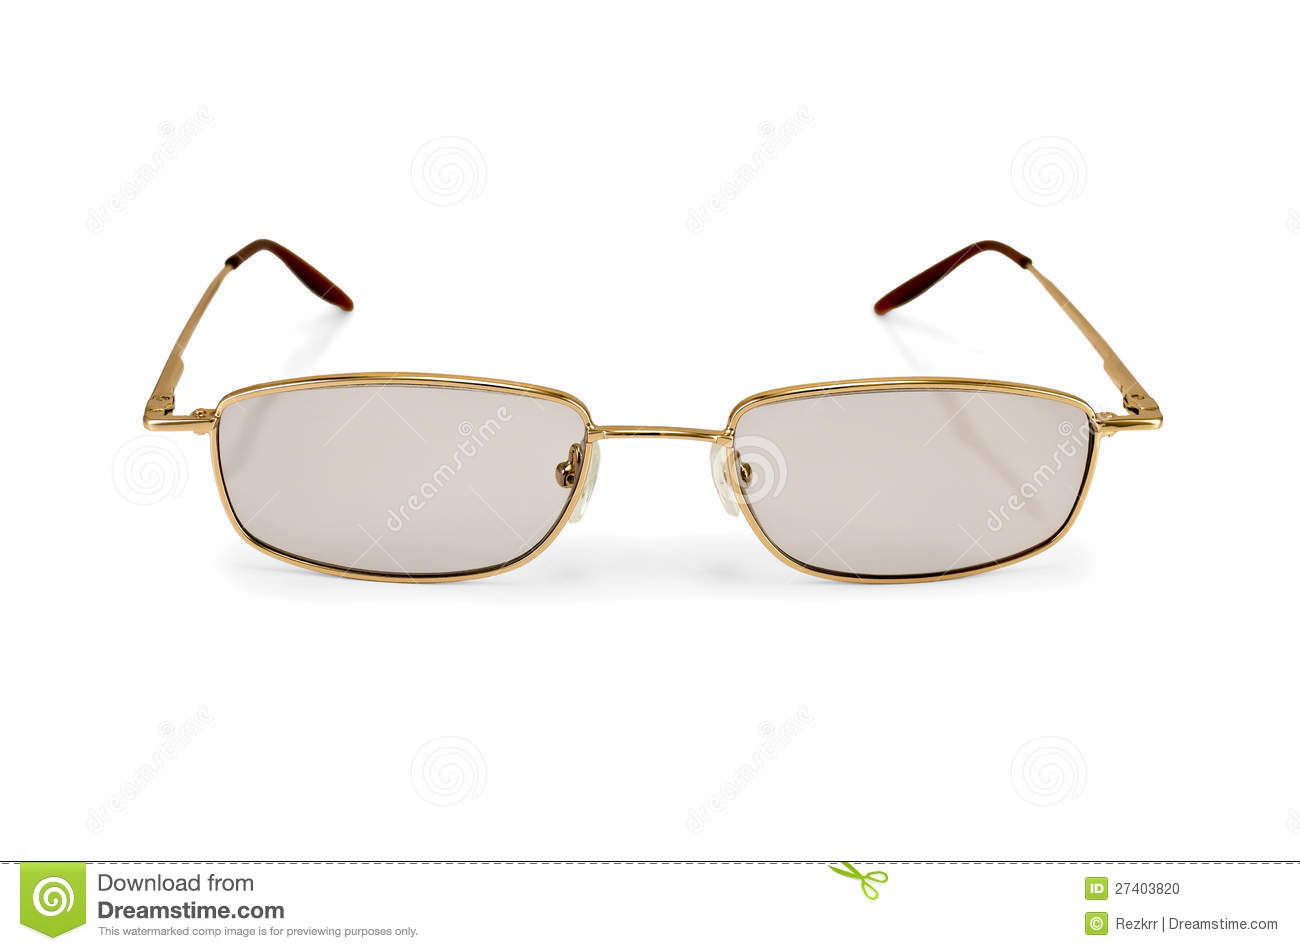 eyeglasses with tinted glasses with a light shade on white background. Black Bedroom Furniture Sets. Home Design Ideas